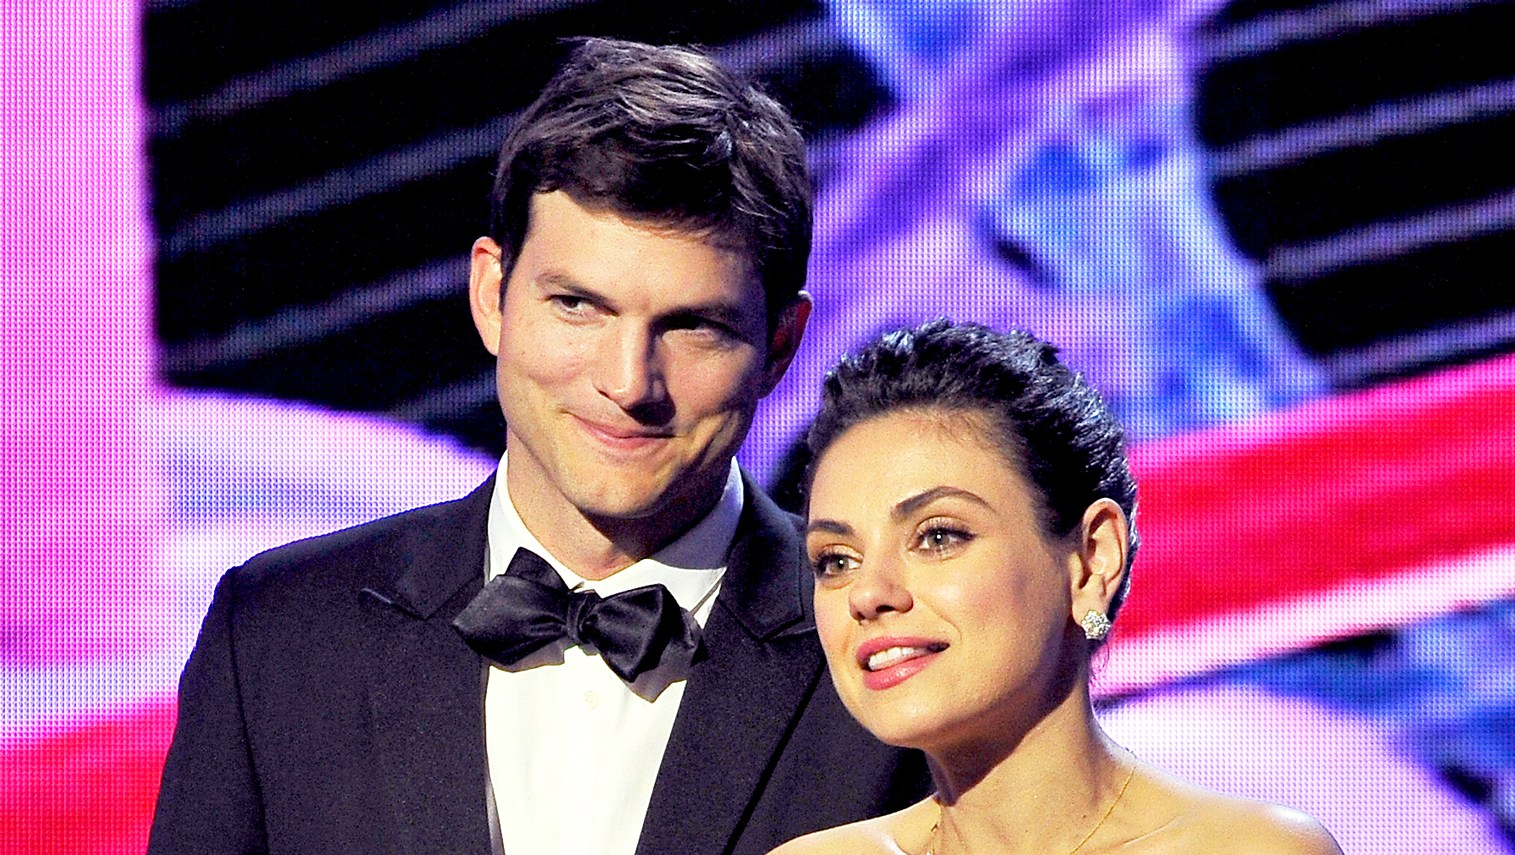 Ashton Kutcher and Mila Kunis during the 2018 Breakthrough Prize at NASA Ames Research Center in Mountain View, California.